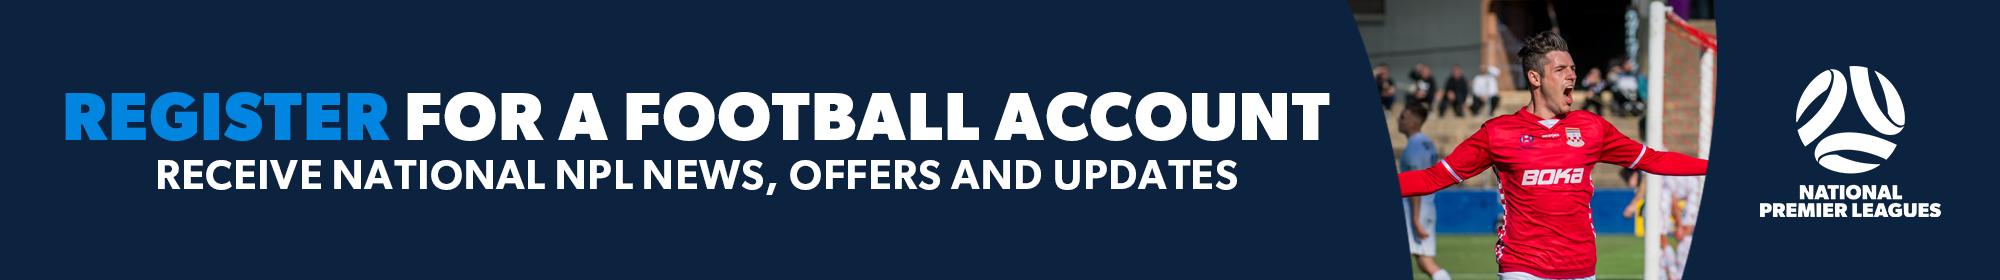 NPL Register For  A Football Account